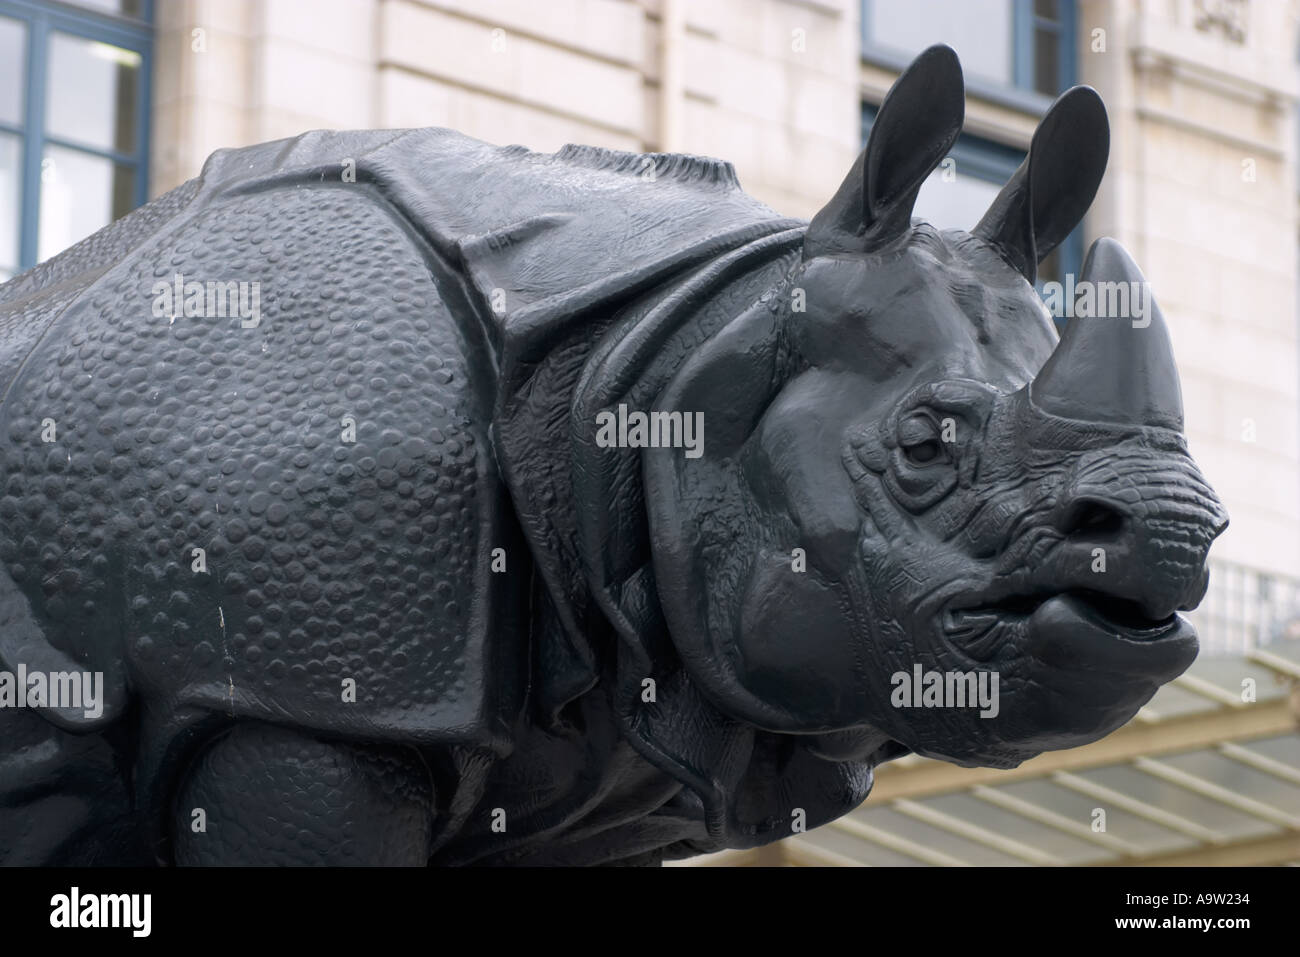 Rhinoceros statue by Henri Alfred Jacquemart (1824-1896) outside Musée d'Orsay Paris France - Stock Image